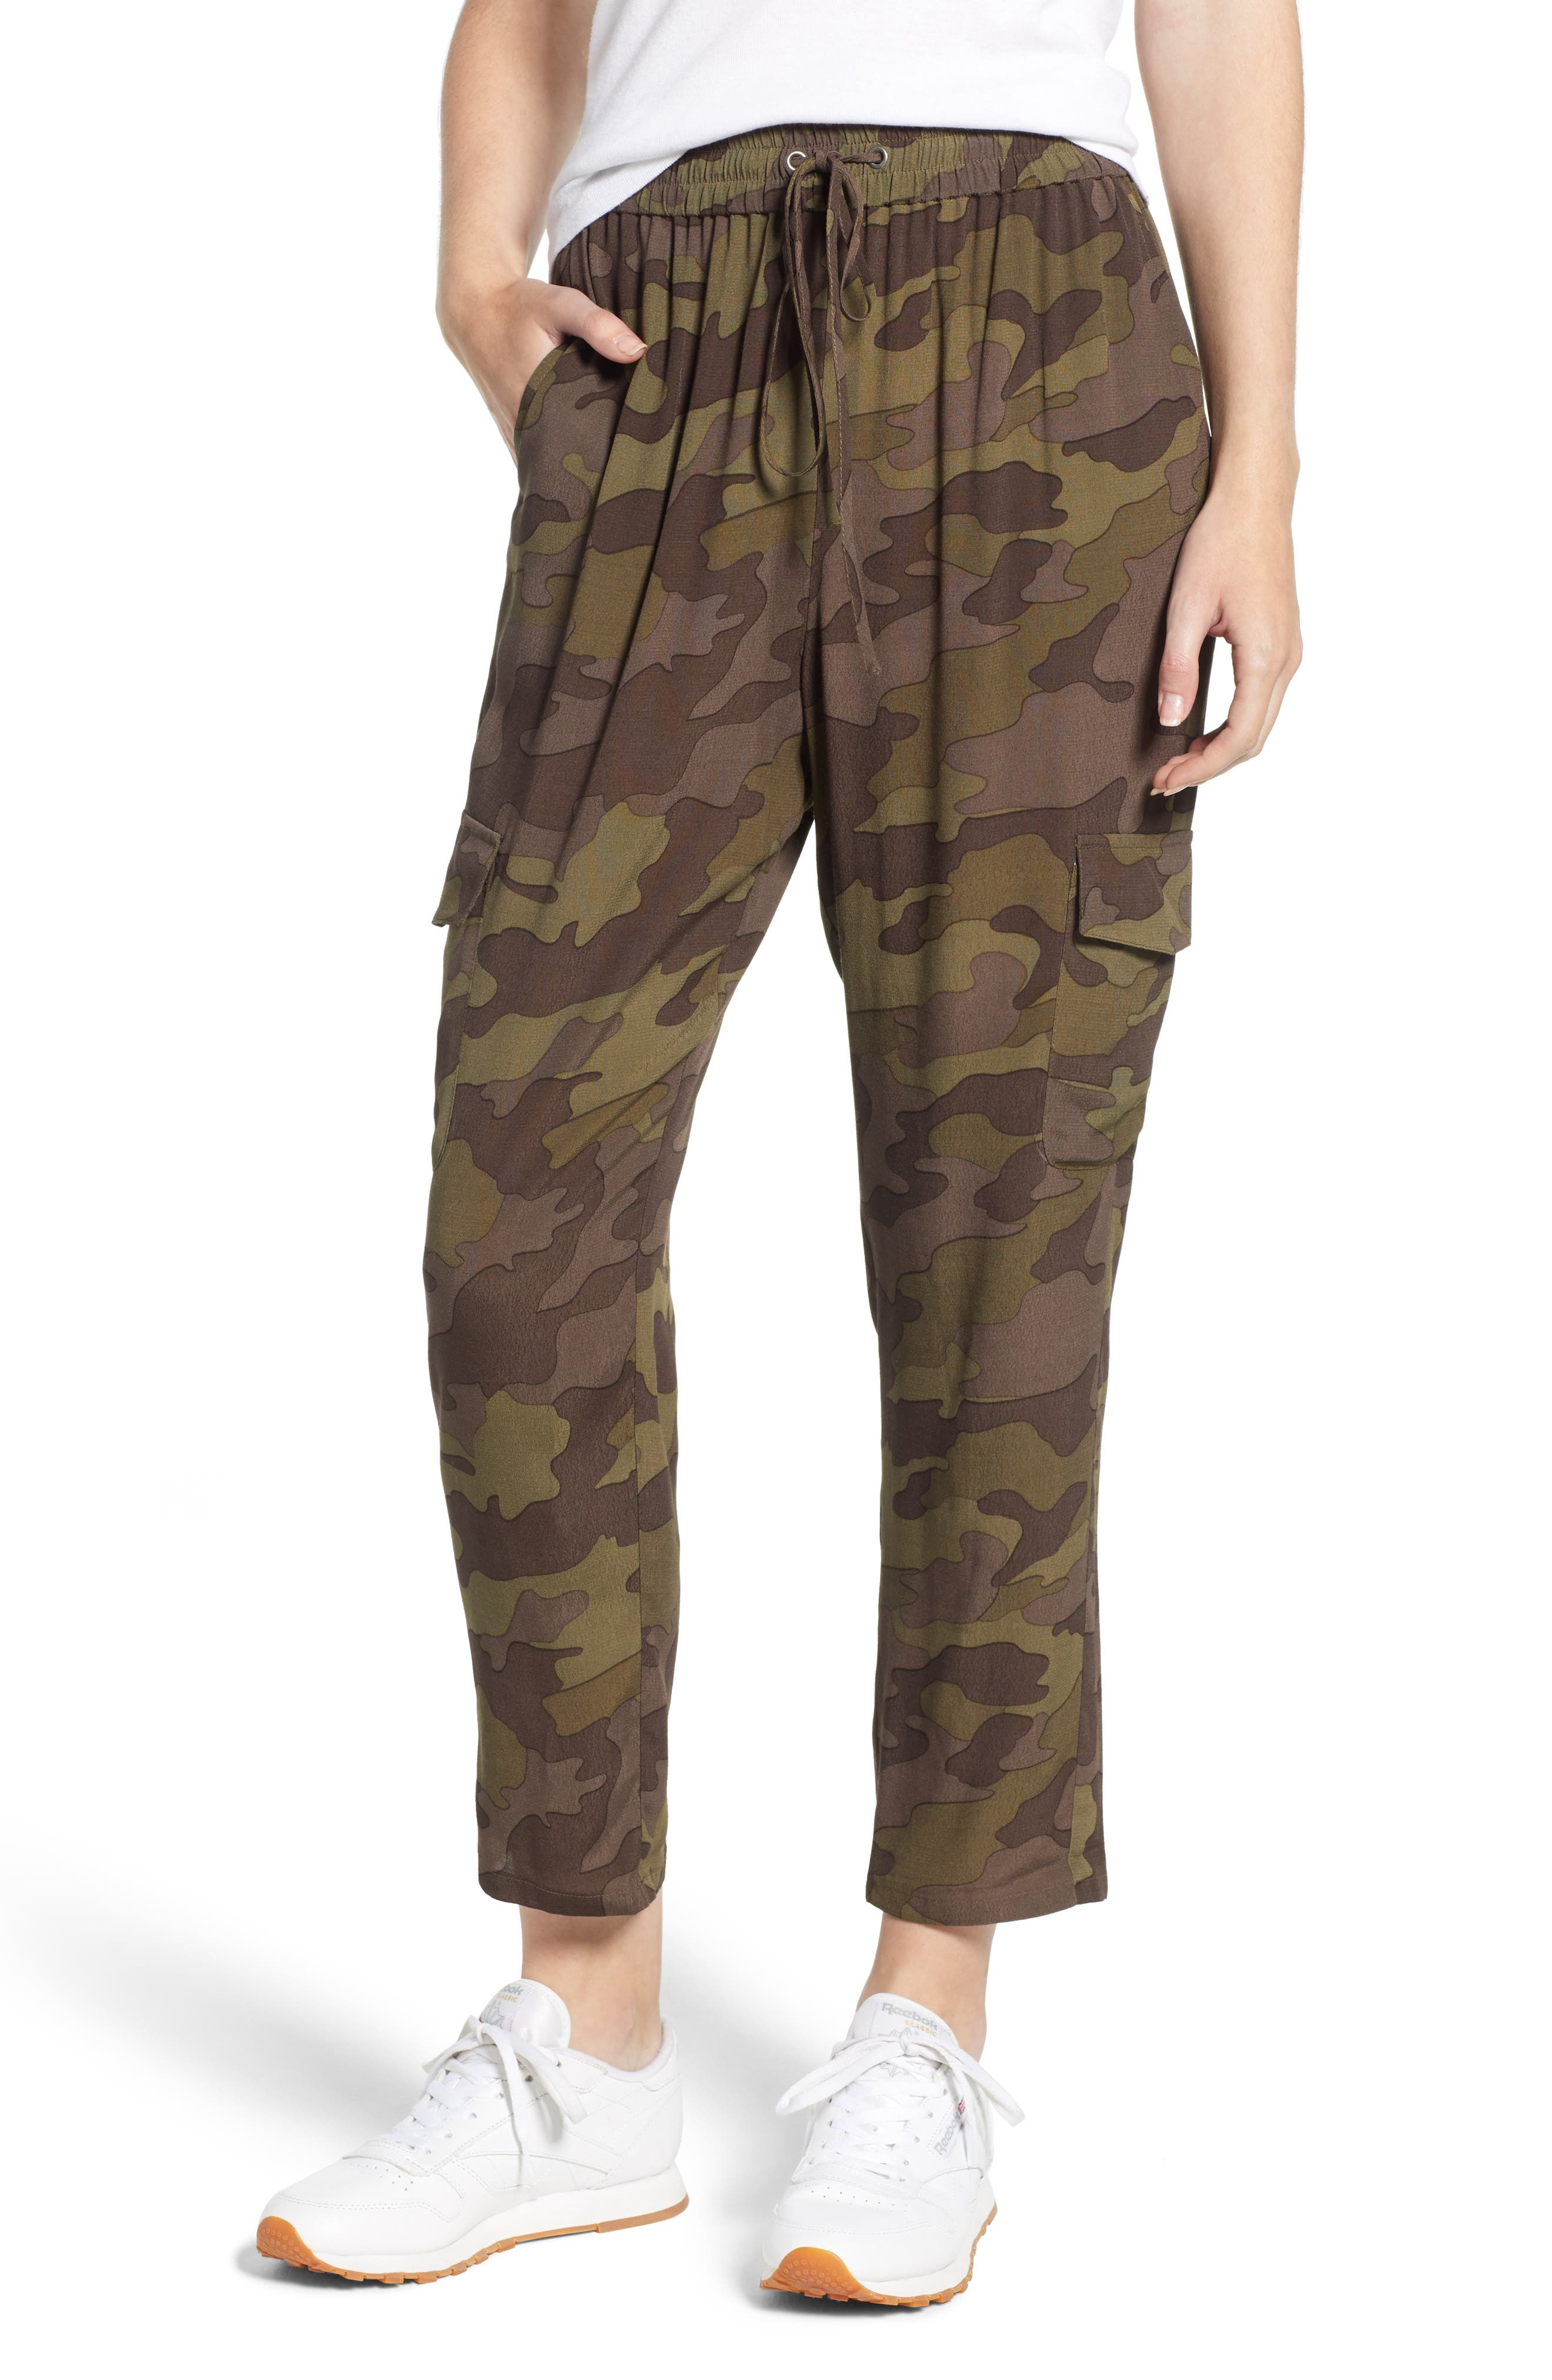 High Rise Camouflage Cargo Pants,                             Main thumbnail 1, color,                             210